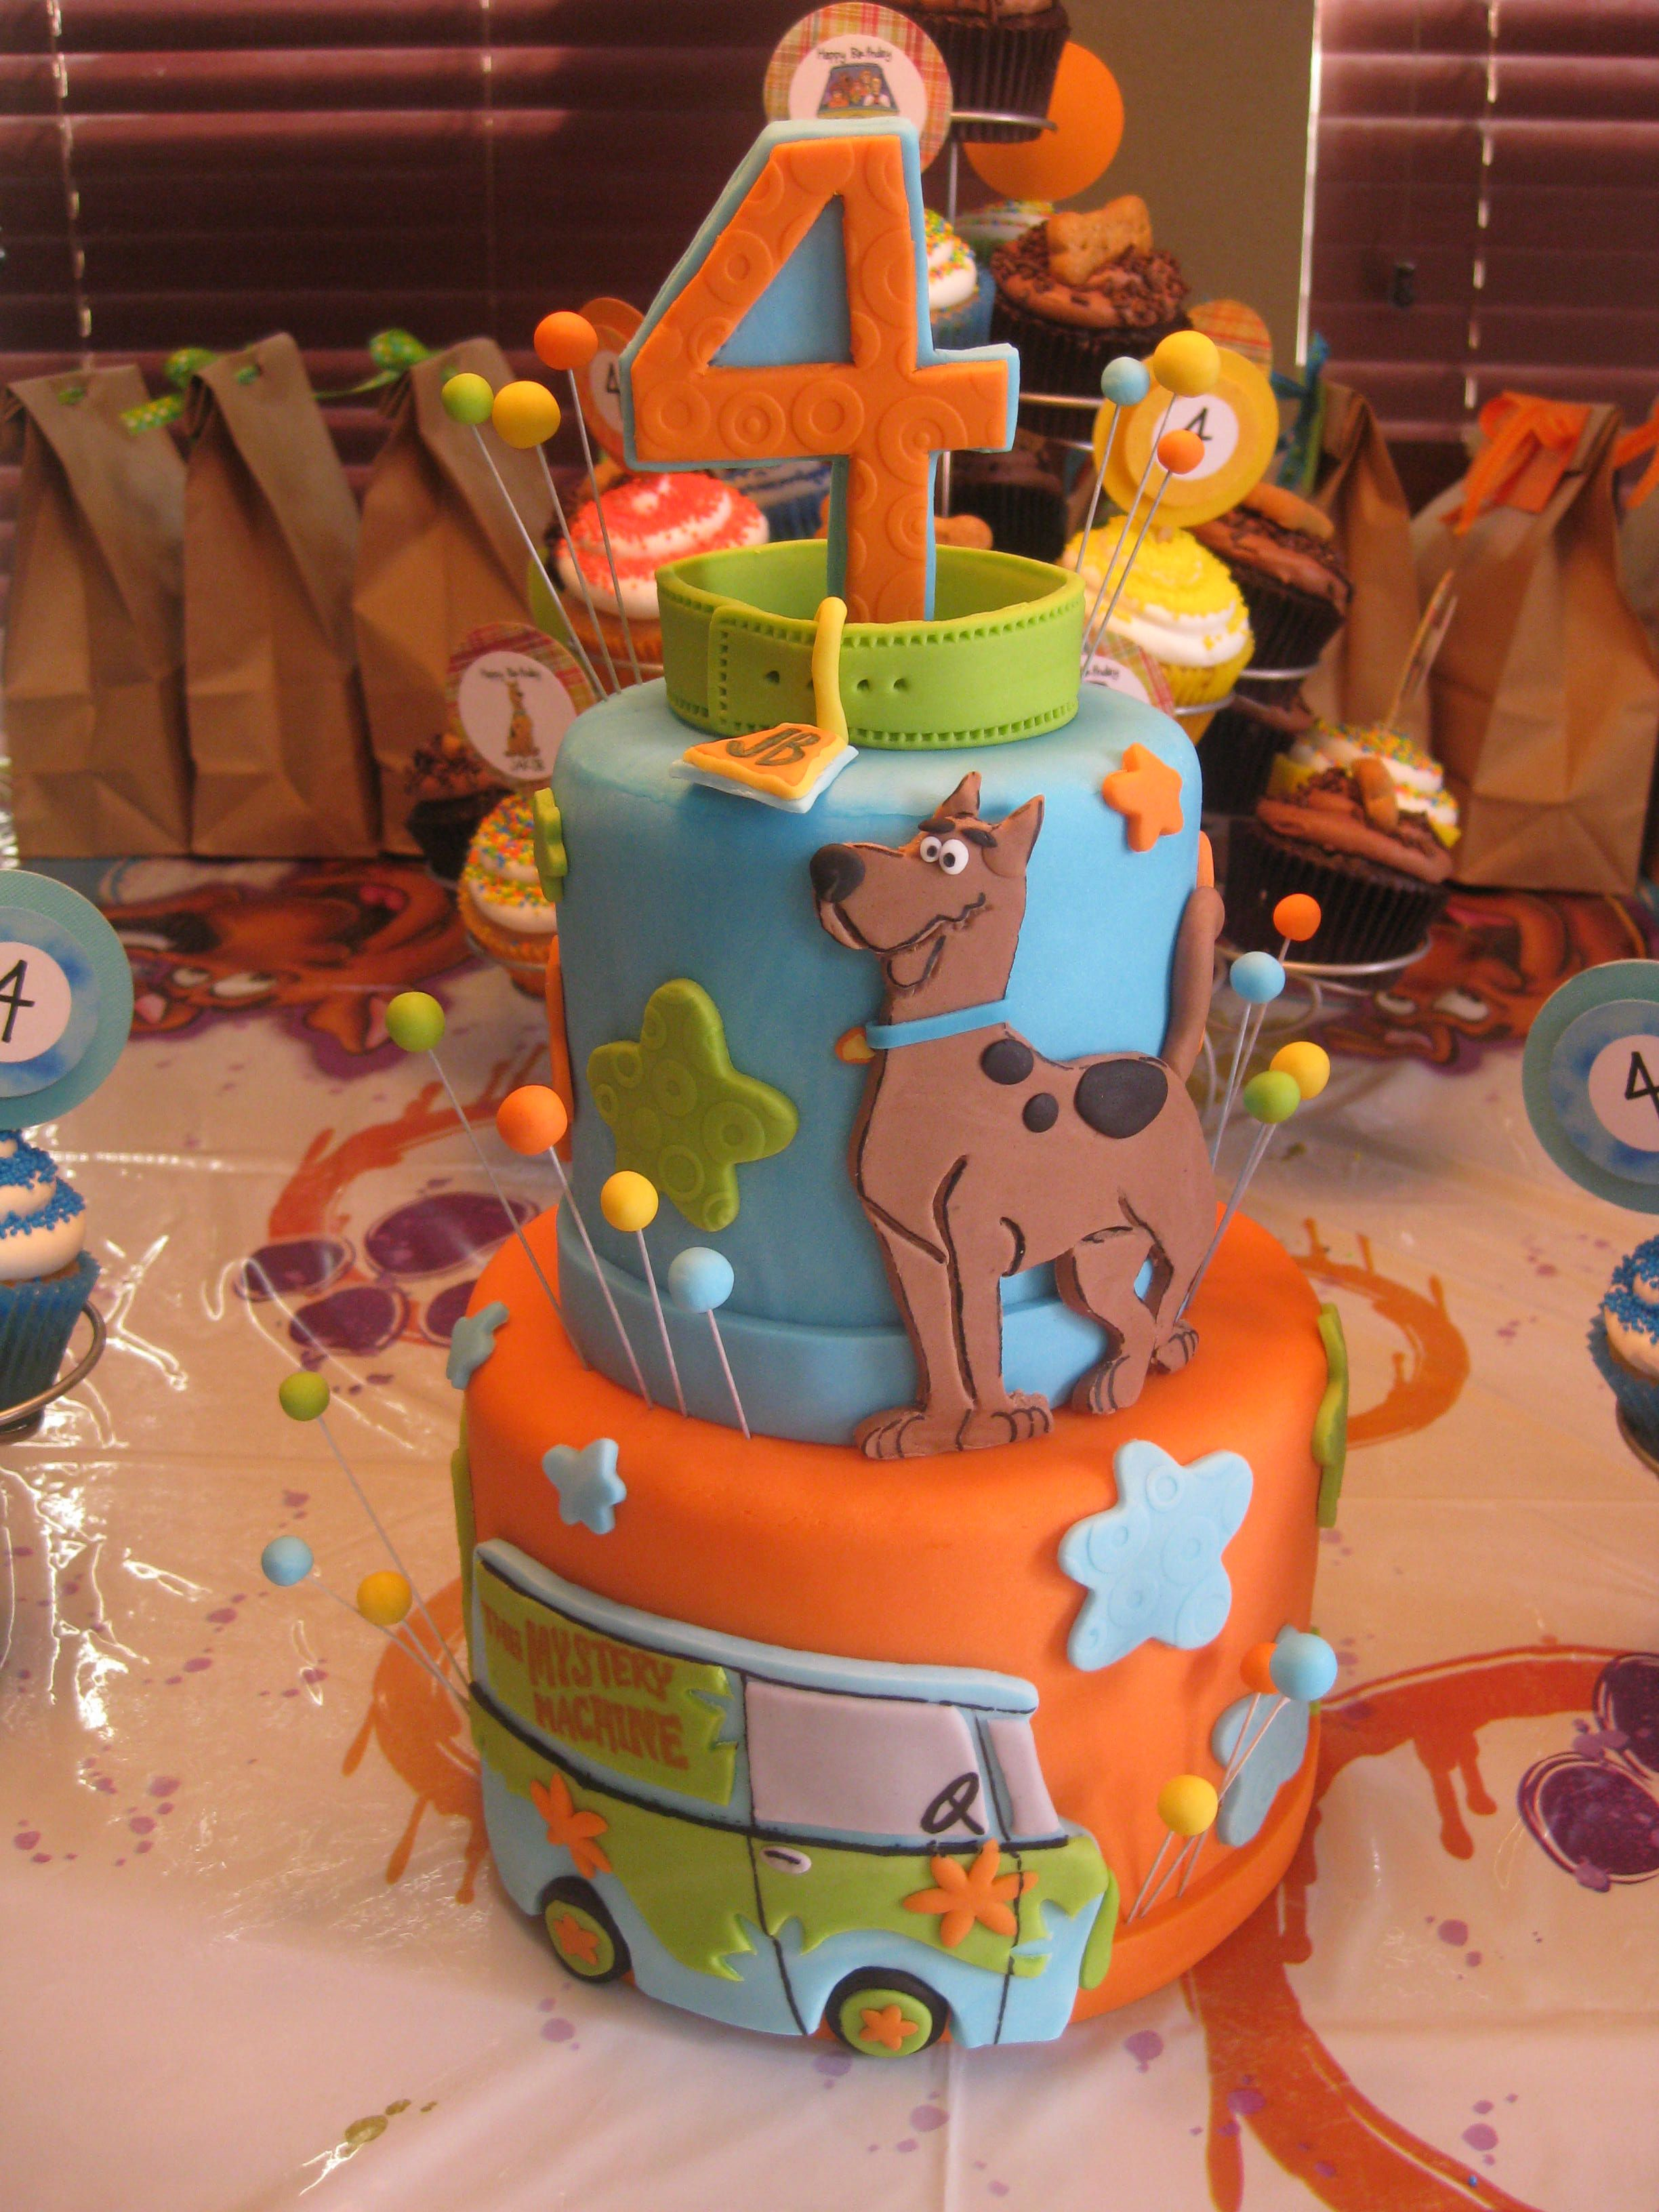 Scooby Doo Bedroom Accessories Scooby Doo Cookies Are An Adorable And Delicious Outdoor Movie